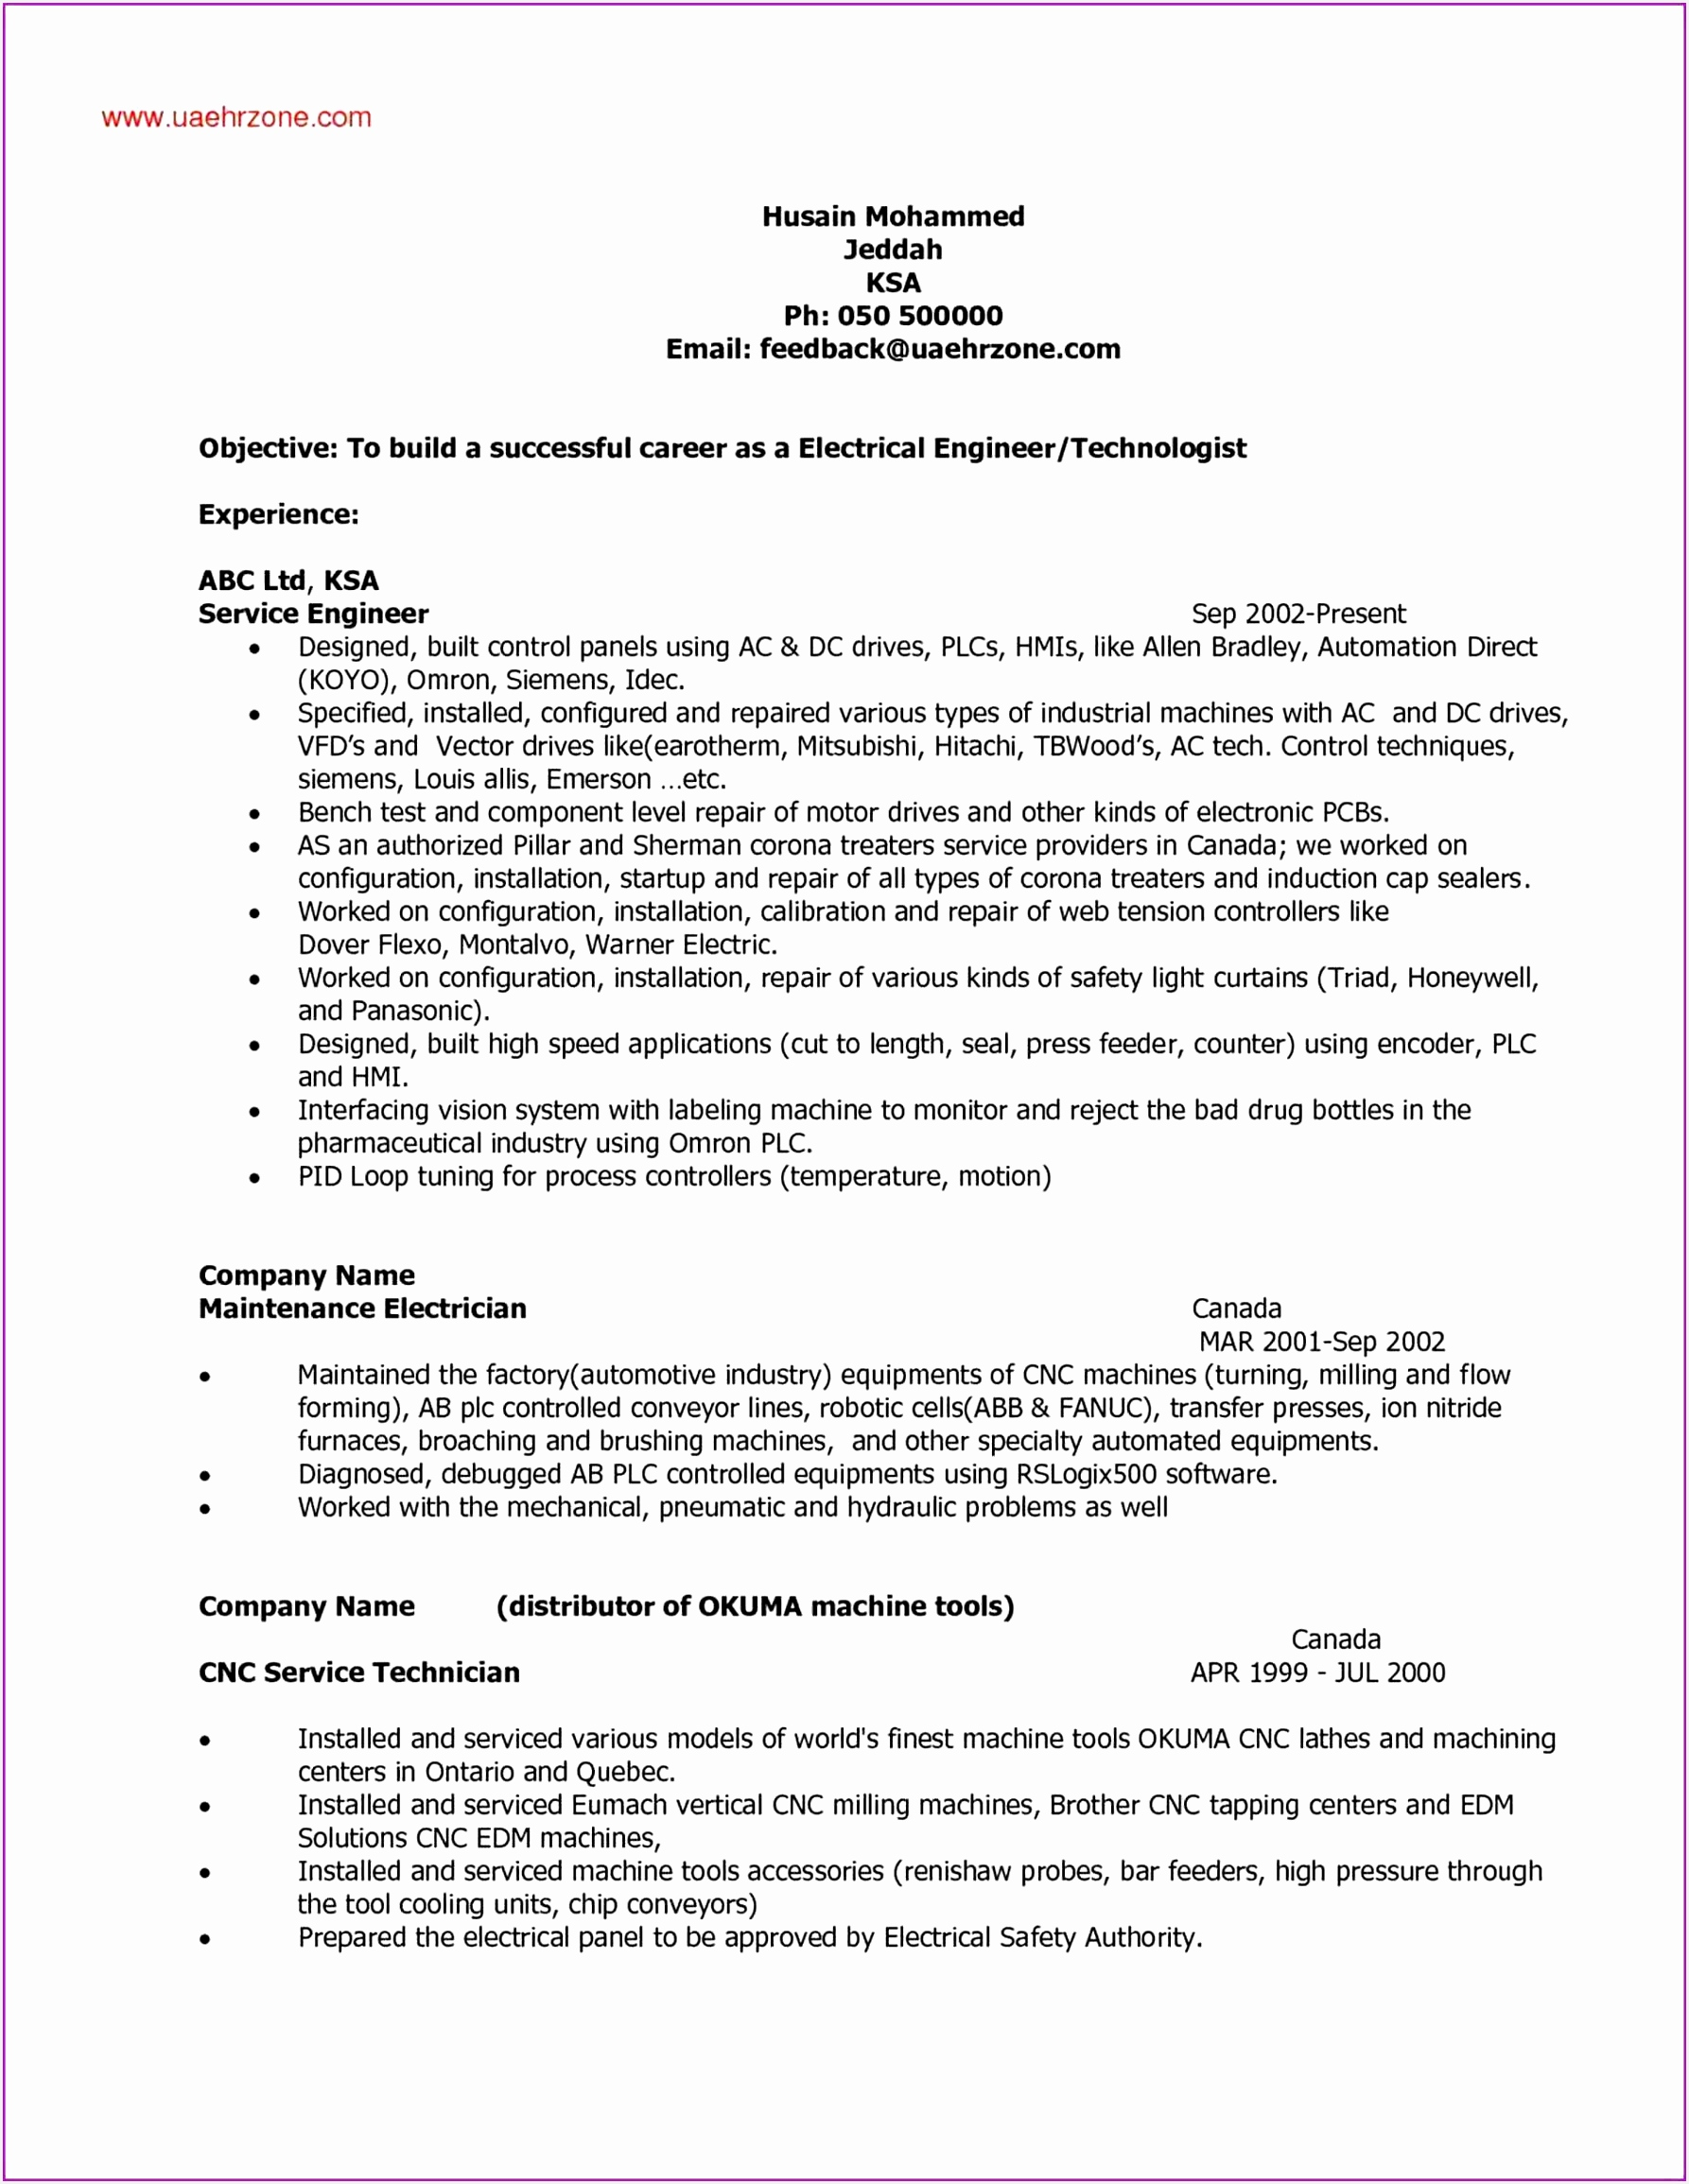 Contract Stress Engineer Sample Resume Baadl Best Of Mechanical Sample Resume Luxury Luxury How to Write A Proper Resume Of Contract Stress Engineer Sample Resume H7ght Luxury Awesome Resume for Tele Engineer Fresher Resume Ideas